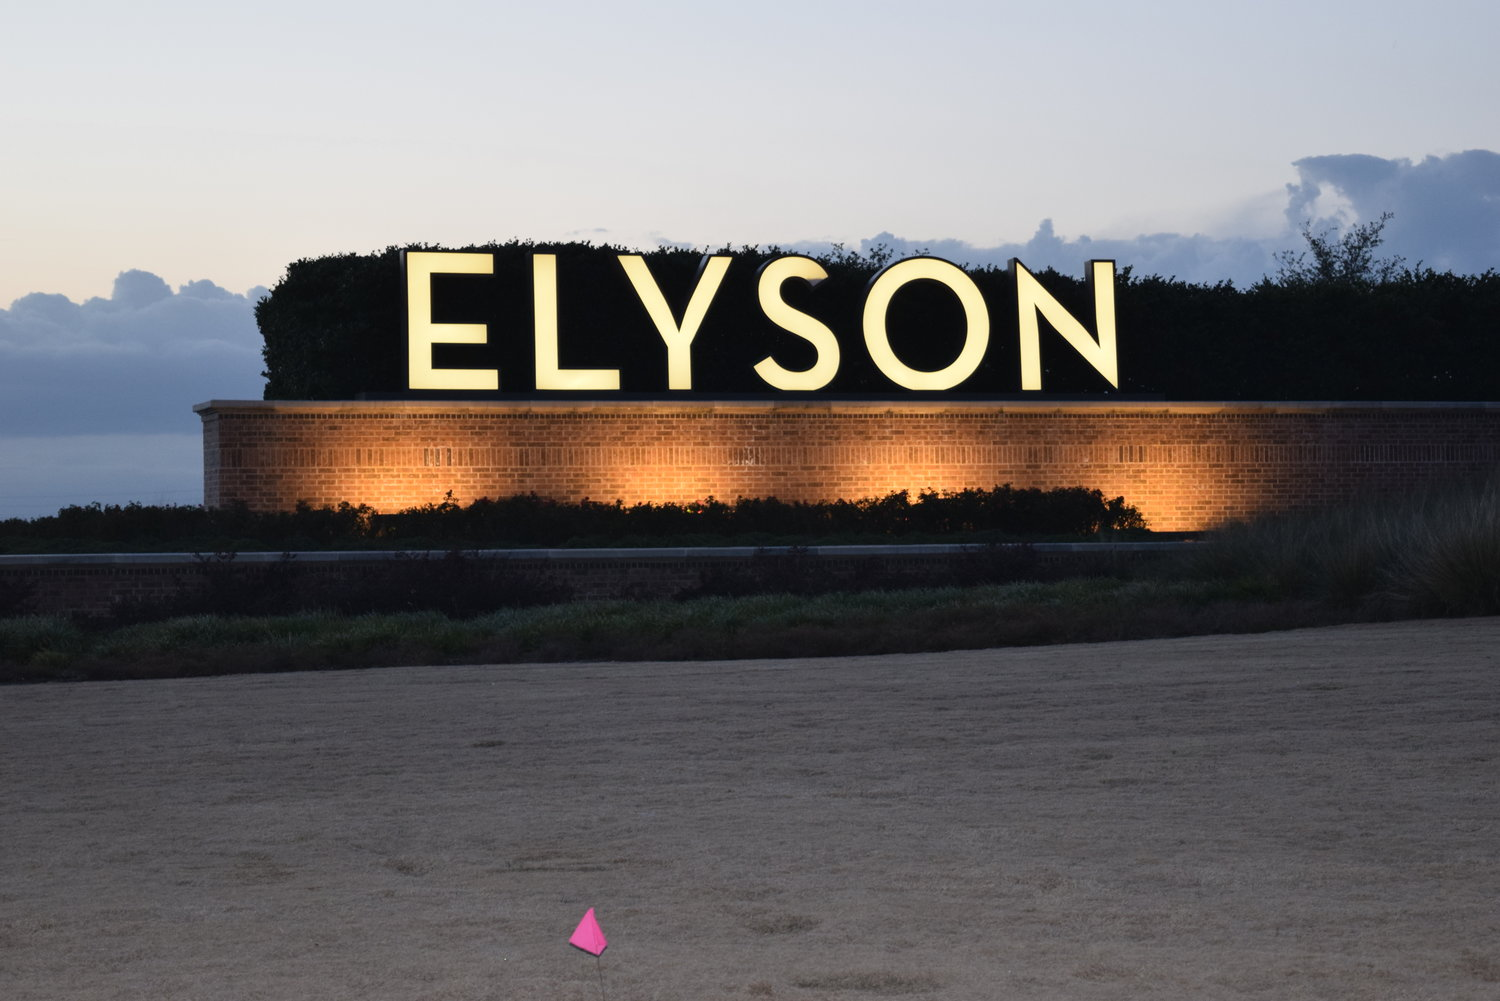 The Elyson master planned community in the northeastern portion of the Katy area continues to expand with additional homes coming to the area north of FM 529 later this year. Behind this sign, land is being prepared for homesites to be built.